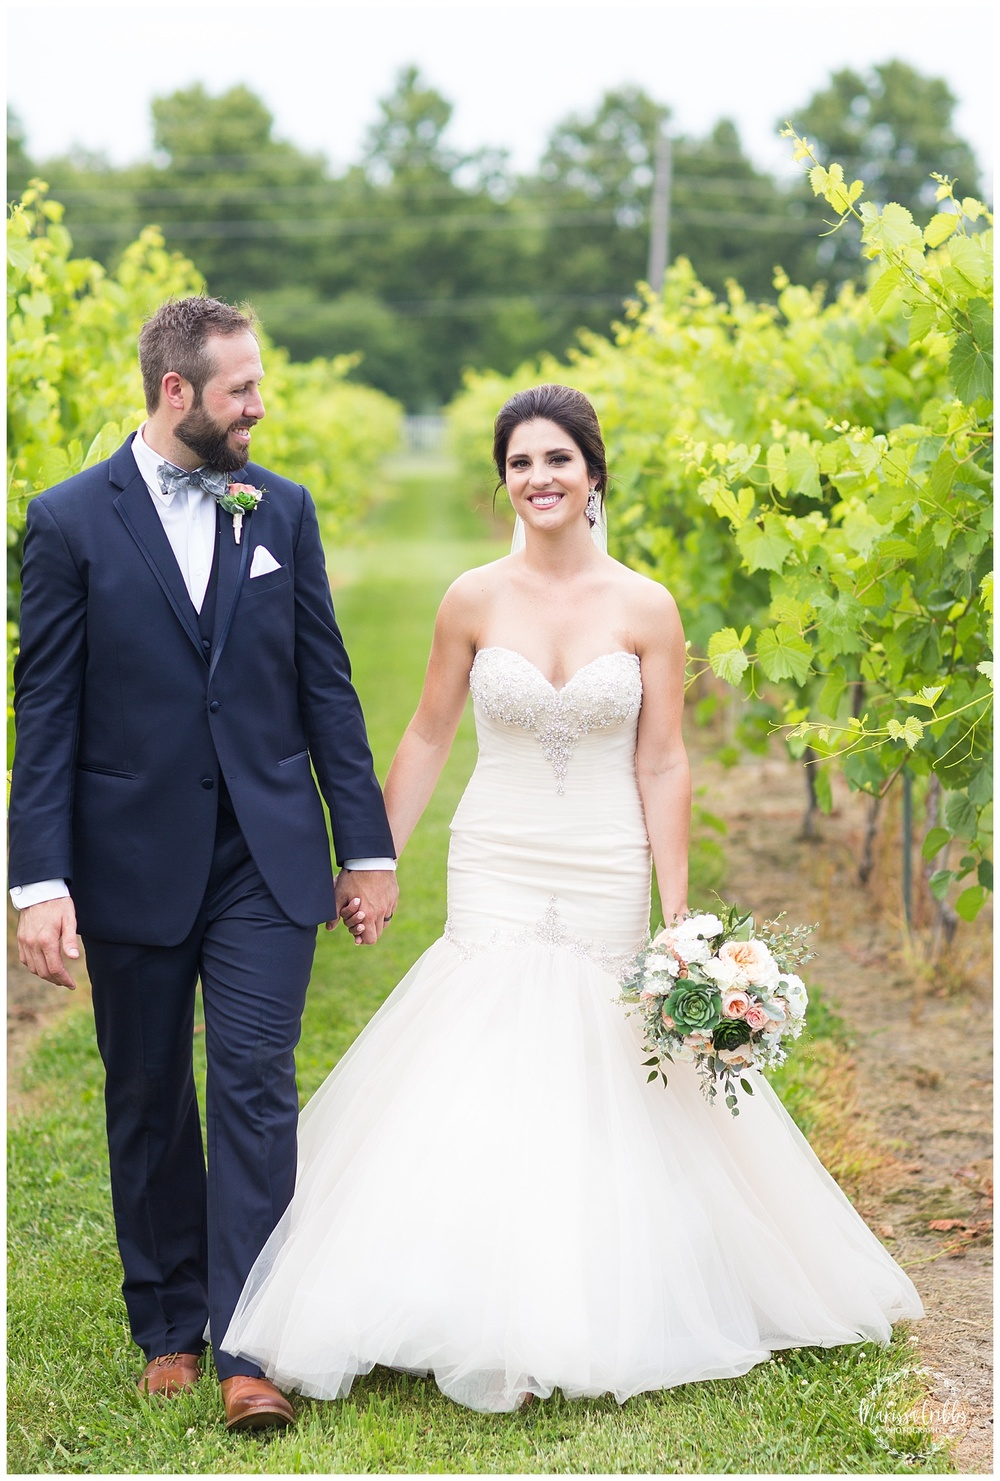 Stonehaus Winery Wedding | KC Wedding Photographer | Marissa Cribbs Photography | The Pavilion Event Space_0374.jpg